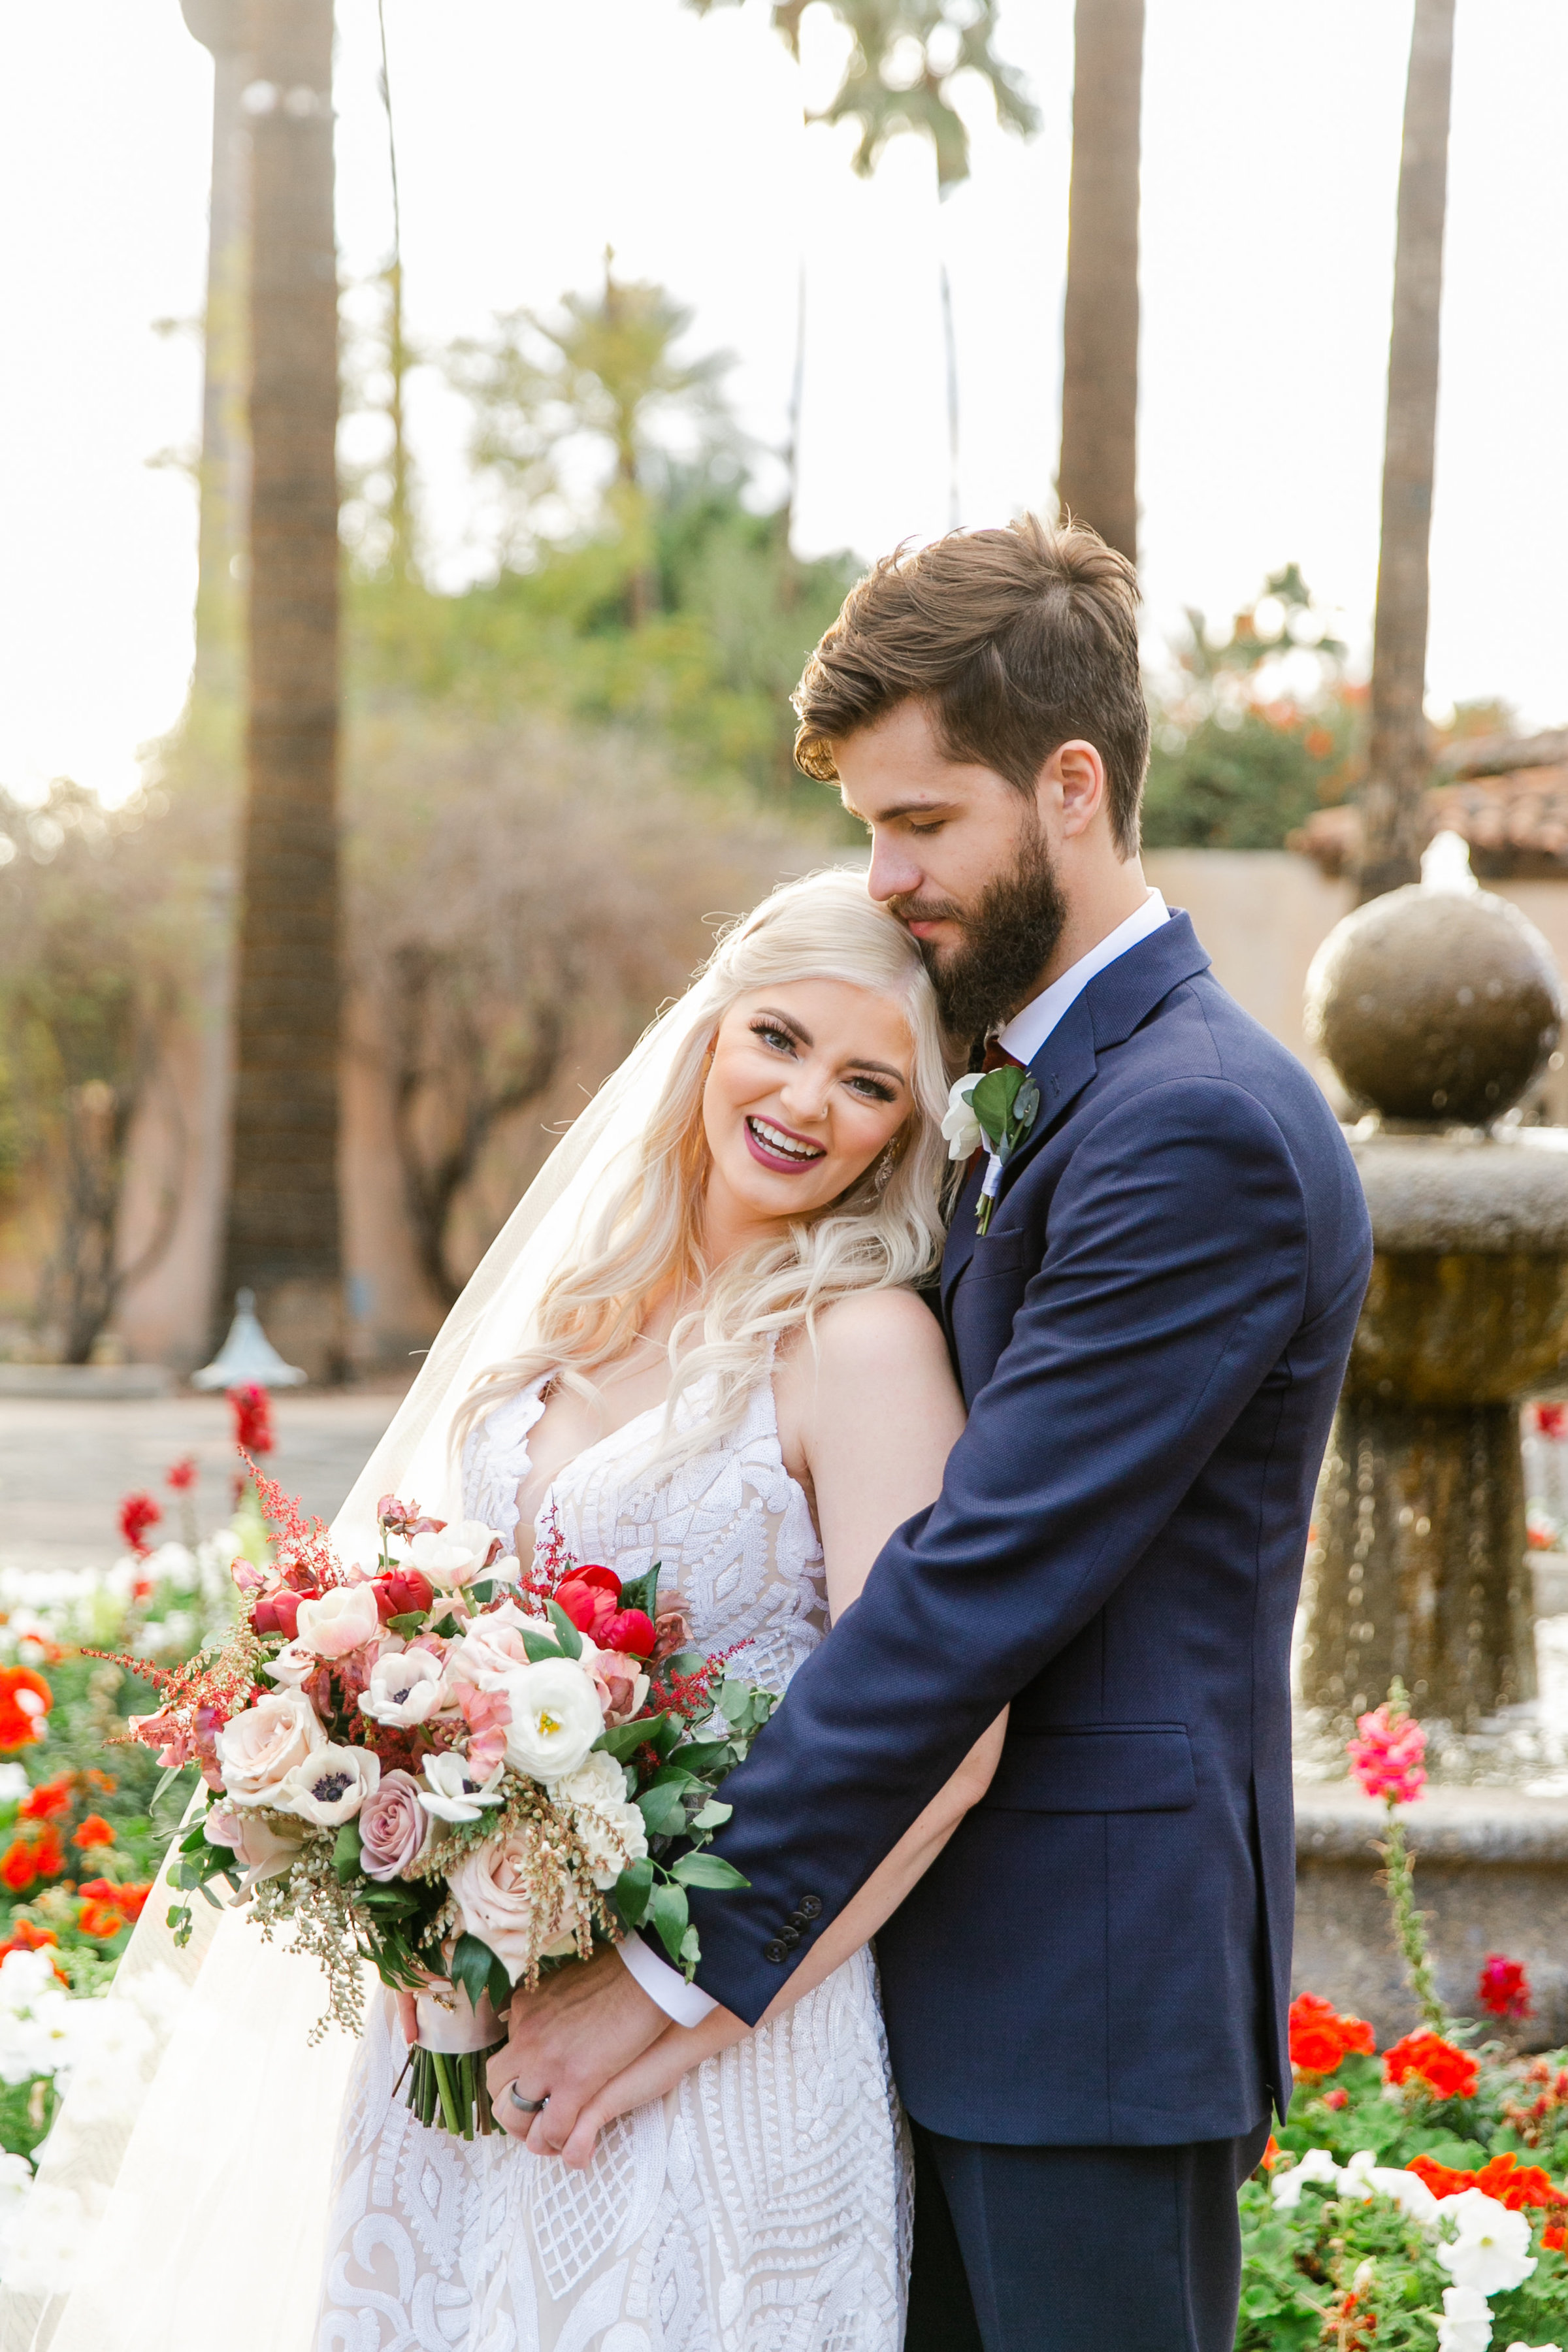 Karlie Colleen Photography - The Royal Palms Wedding - Some Like It Classic - Alex & Sam-546